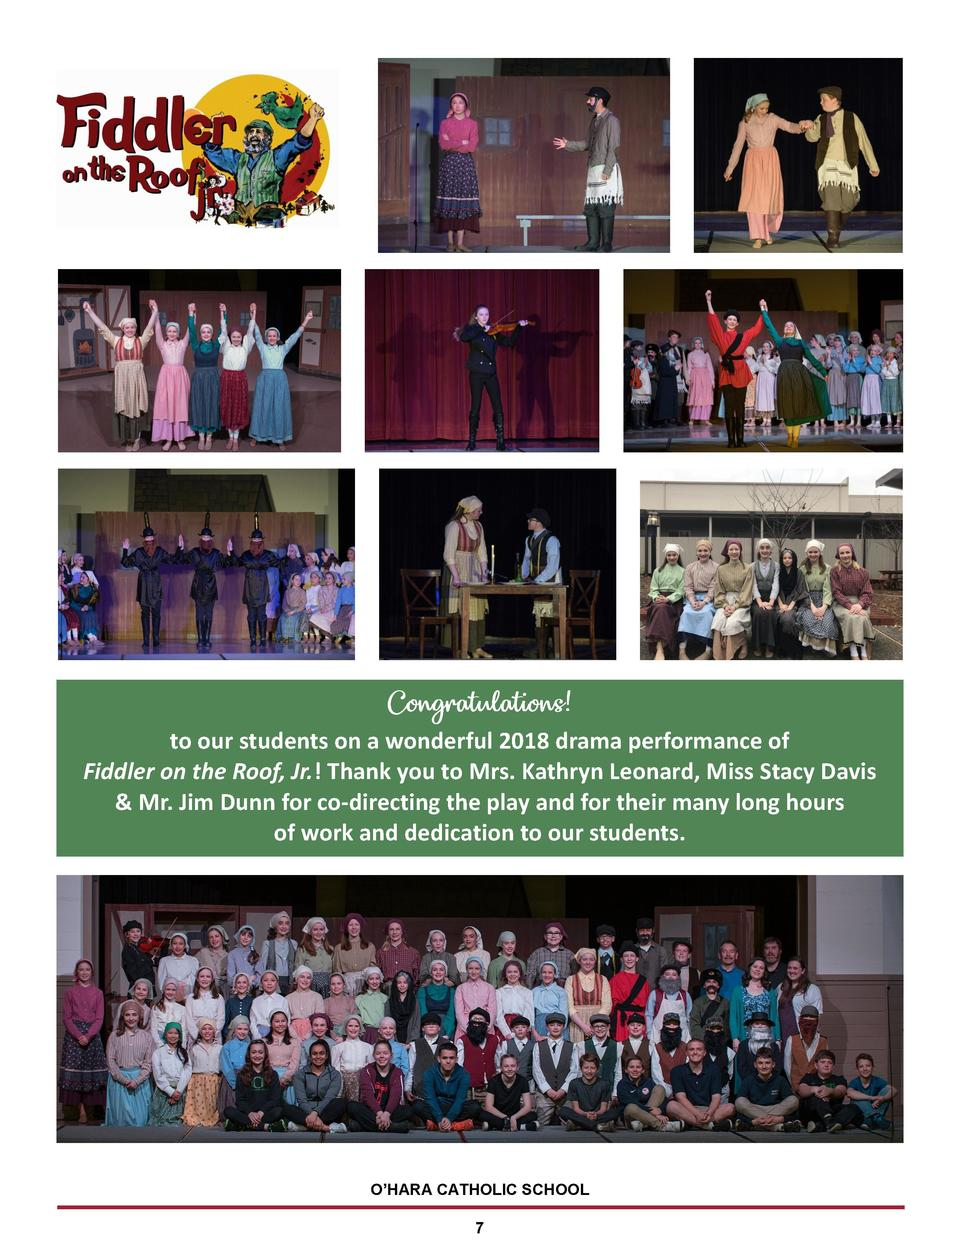 to our students on a wonderful 2018 drama performance of Fiddler on the Roof, Jr.  Thank you to Mrs. Kathryn Leonard, Miss...